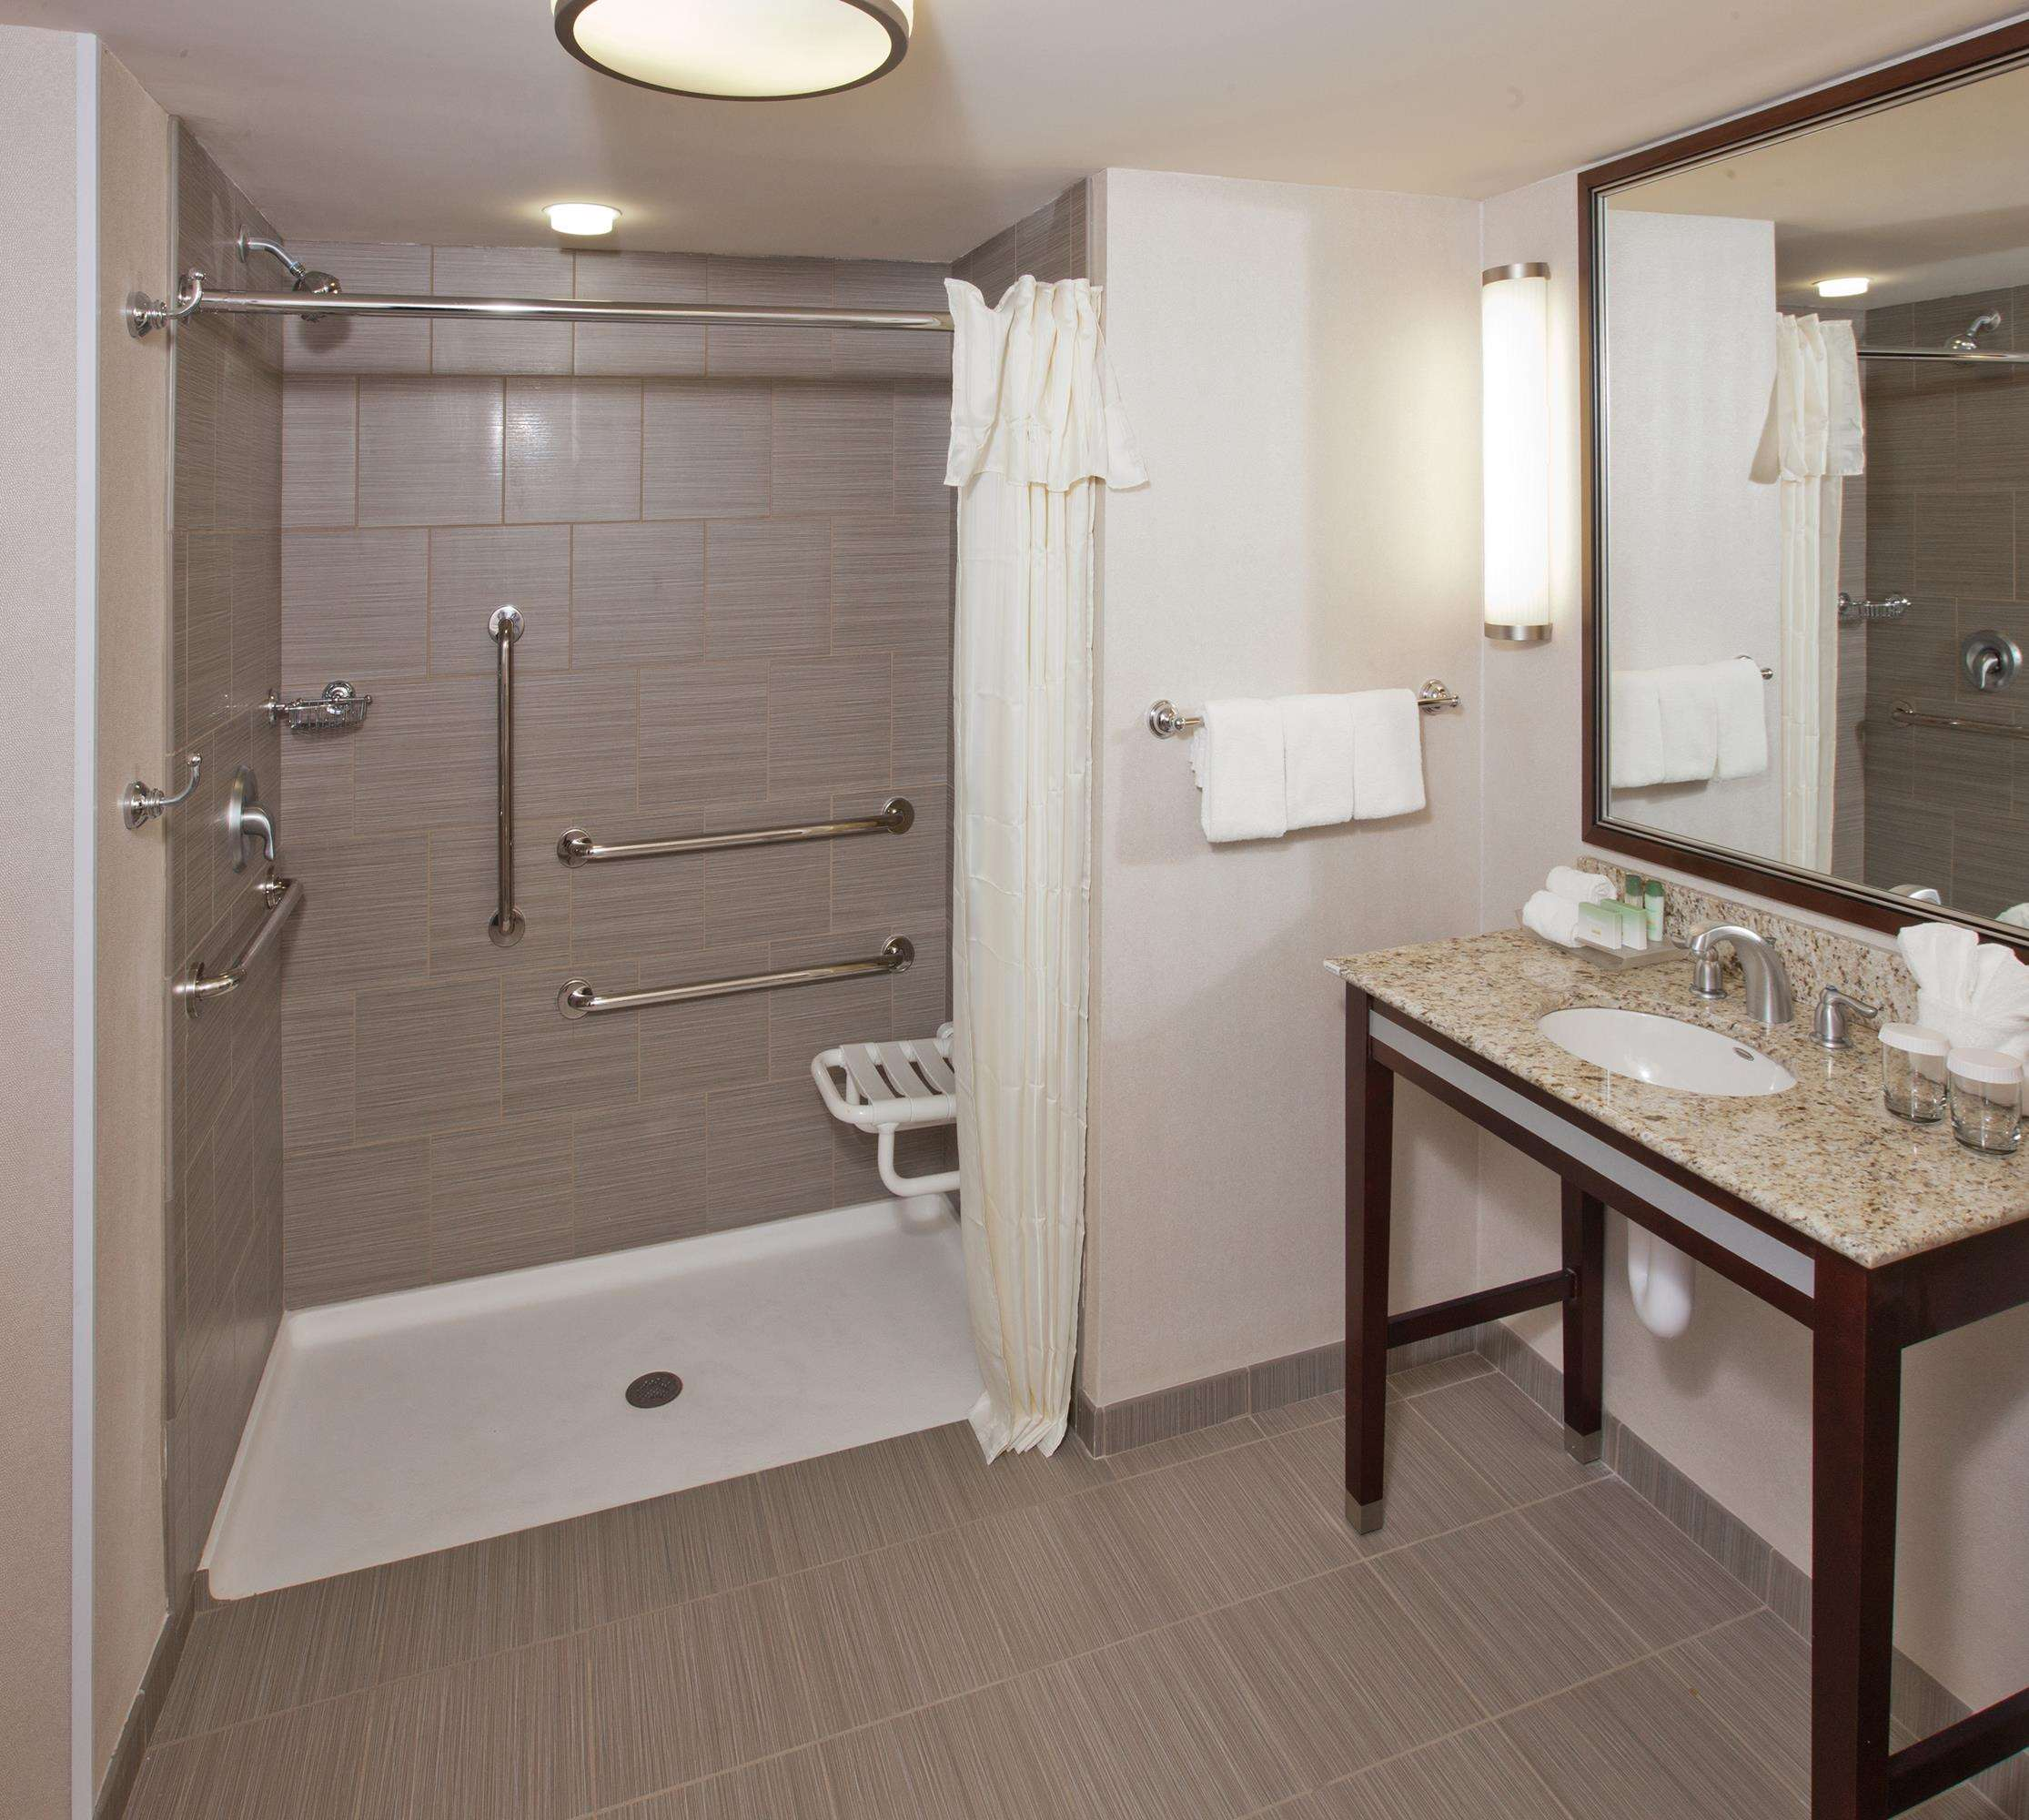 Homewood Suites by Hilton Boston/Canton, MA image 20